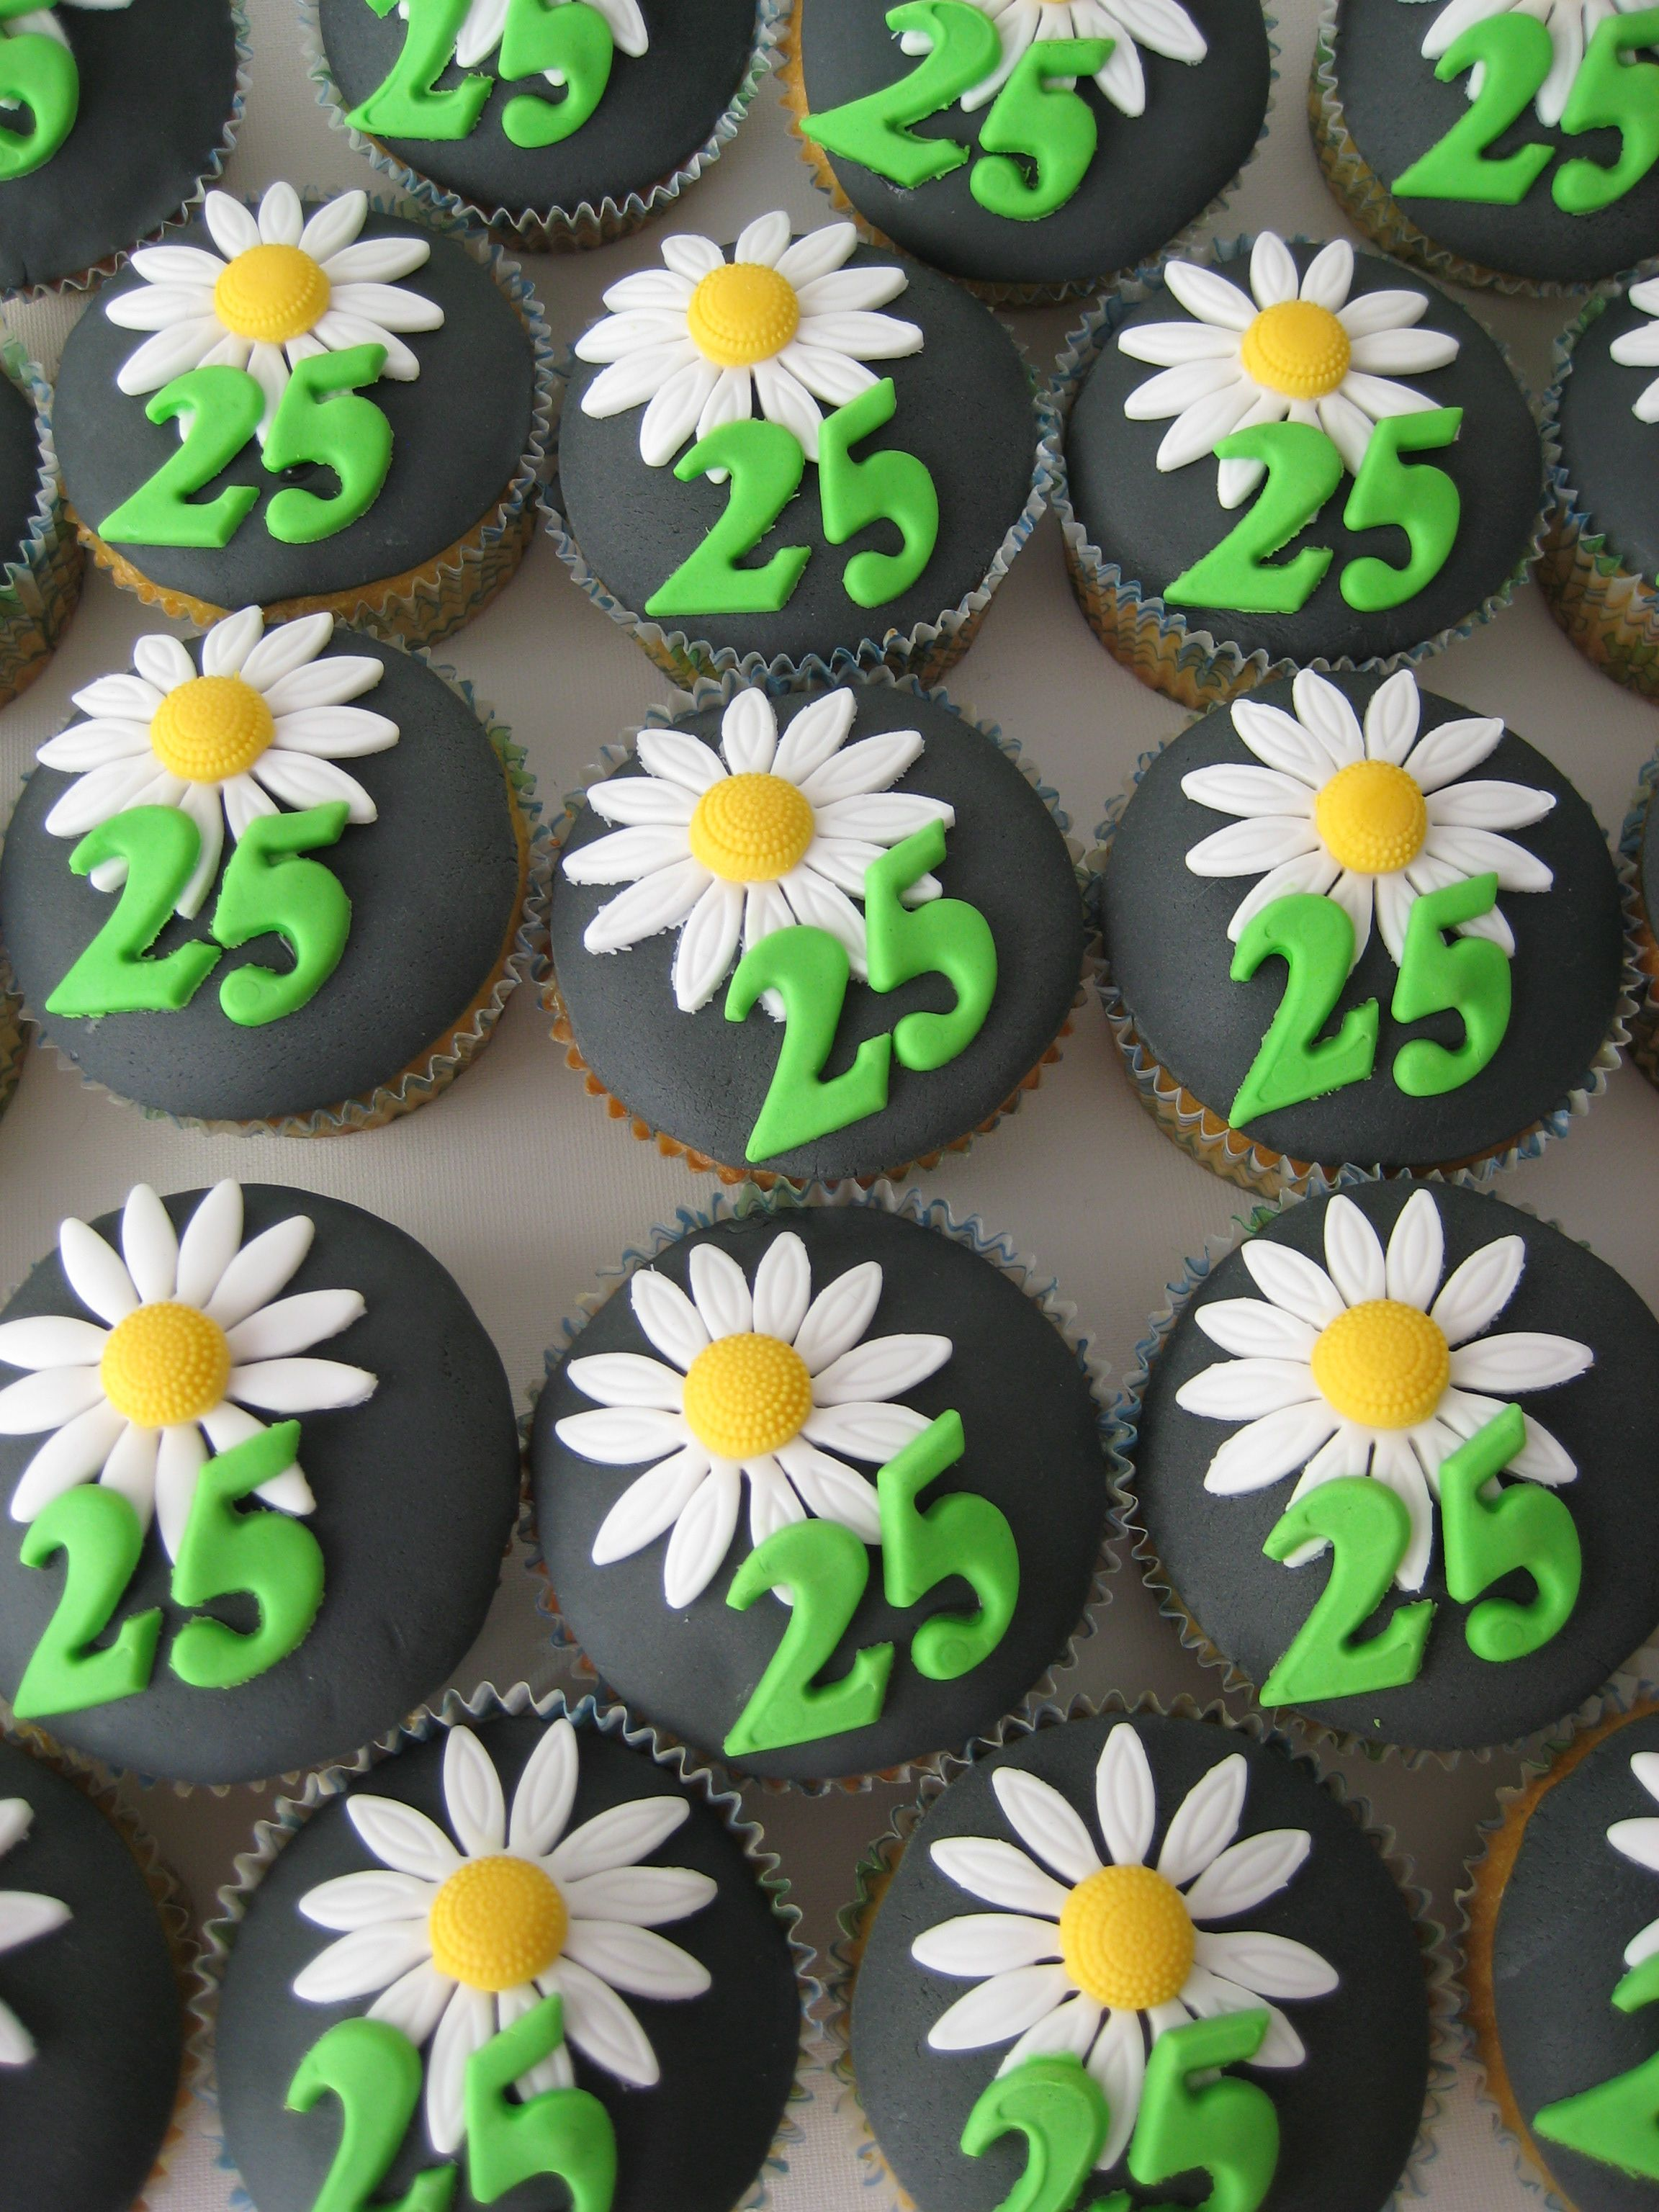 Flower cupcakes cupcakes pinterest flower cupcakes cake and